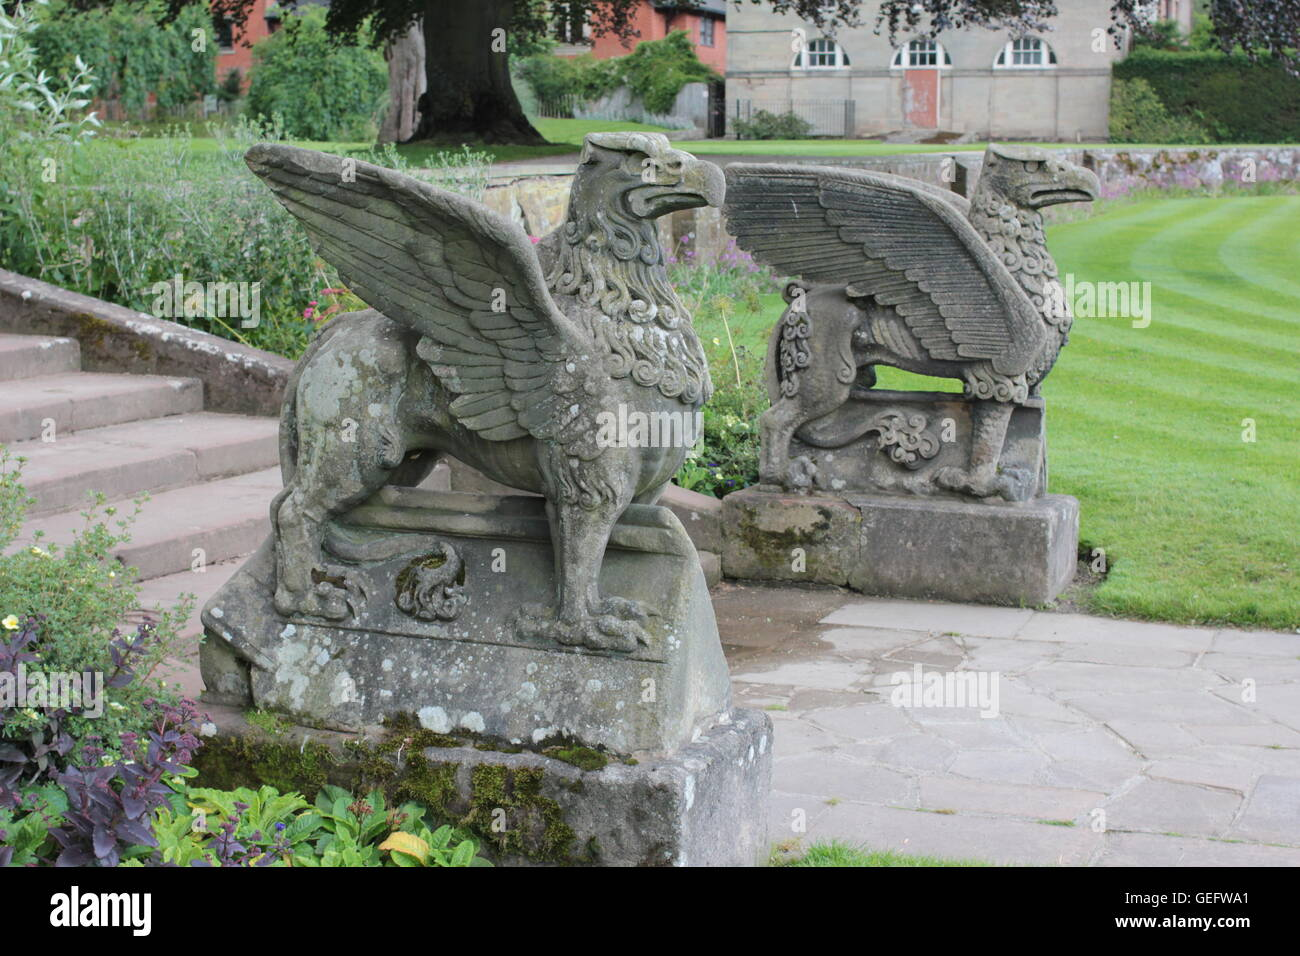 Griffin guarding the stone steps at Coombe Abbey - Stock Image